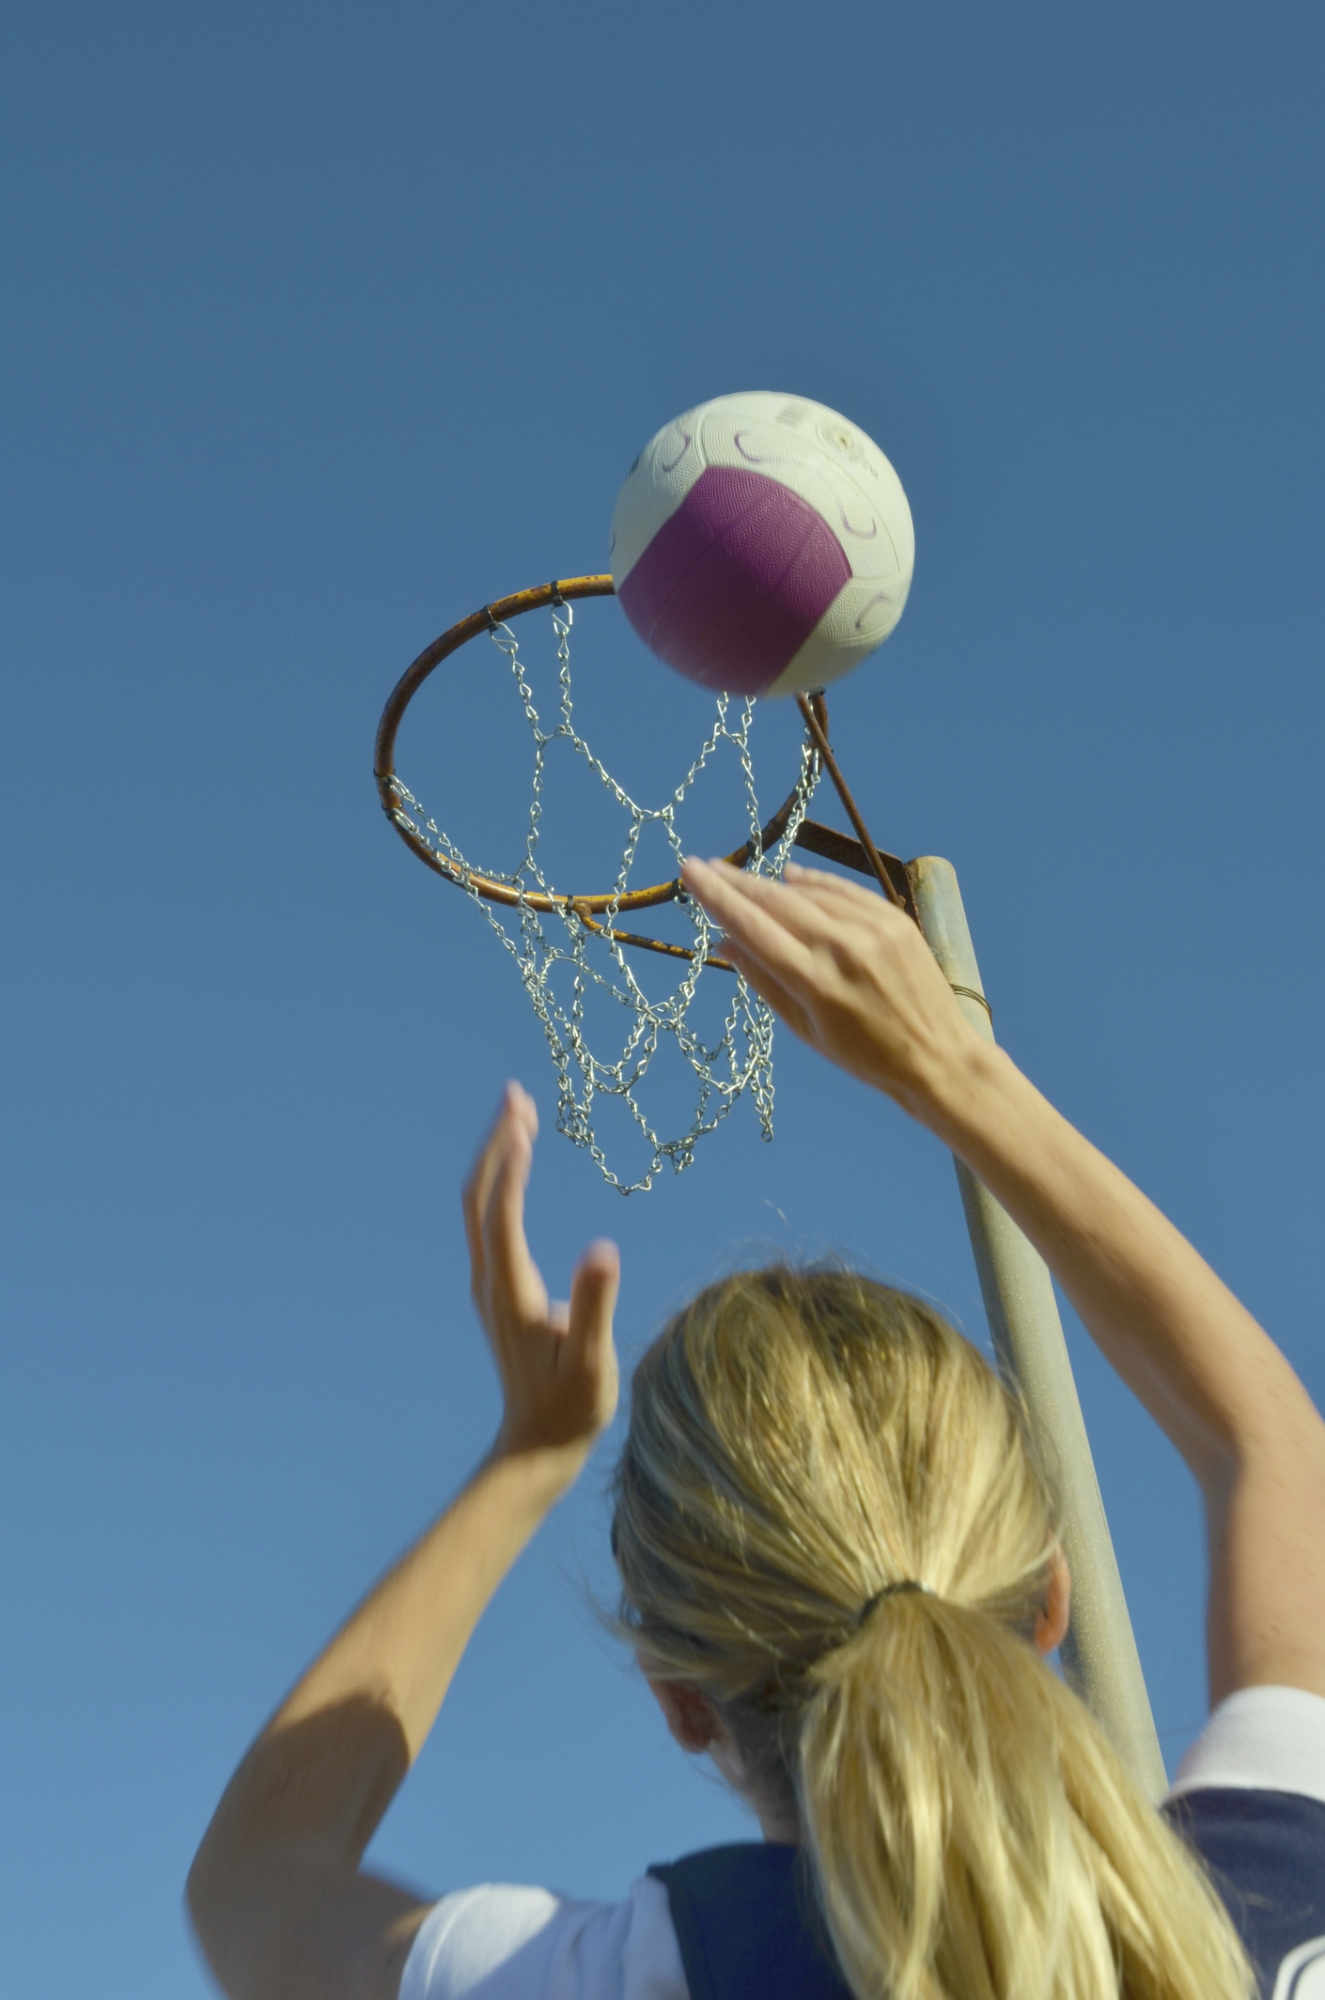 Rossmoyne Netball Club scores funds for upgrade